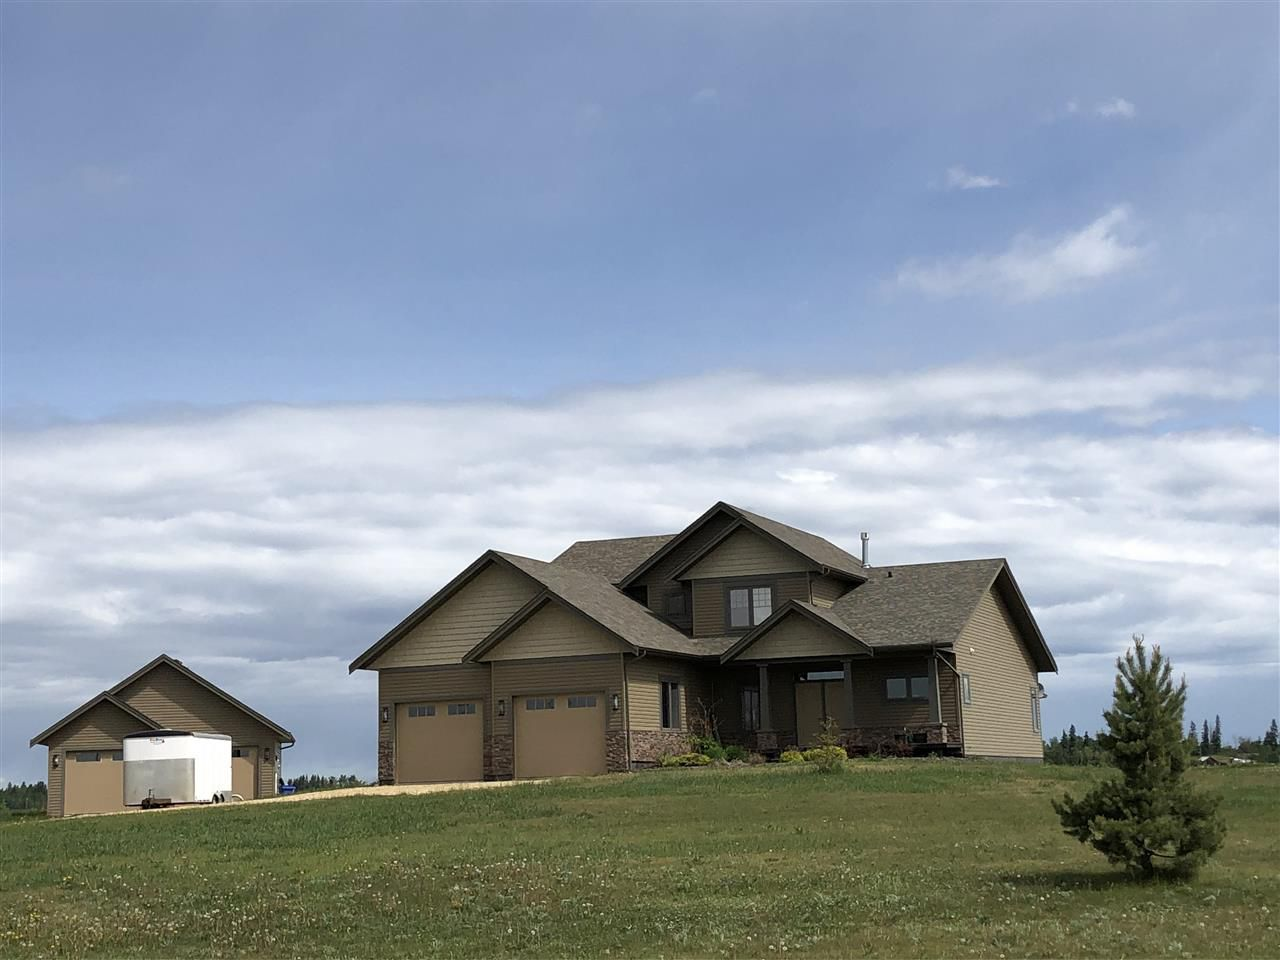 Main Photo: 33 243050 TWP RD 474: Rural Wetaskiwin County House for sale : MLS®# E4153868